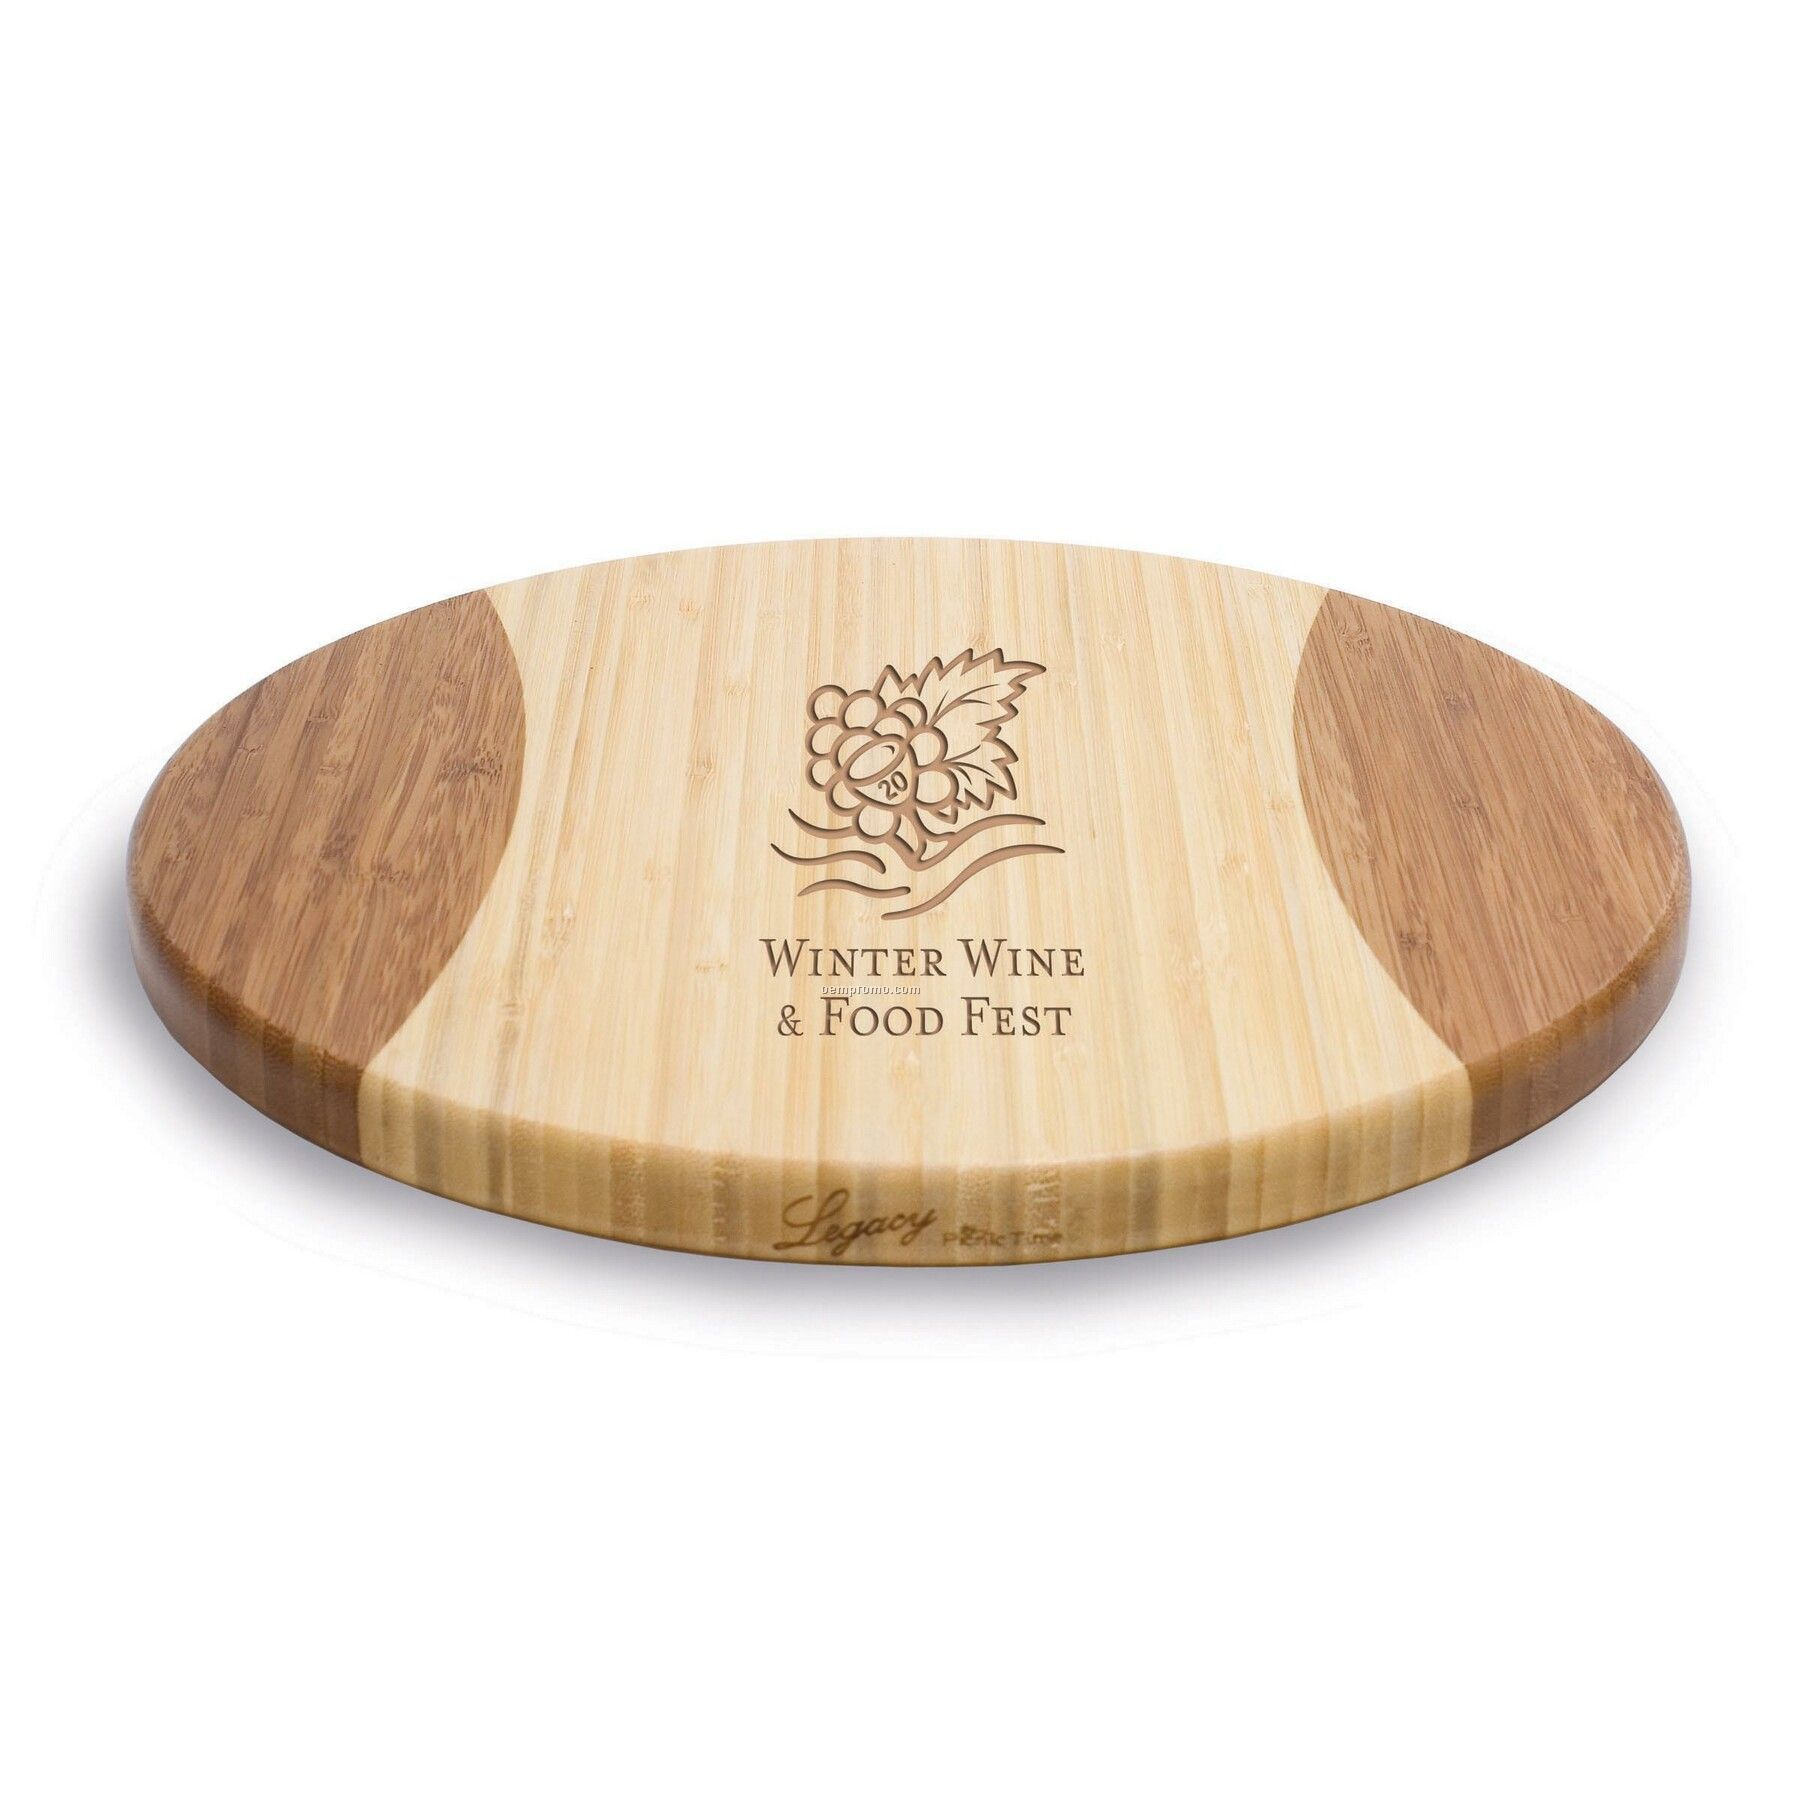 "Rotondo 12"" Round 2 Tone Bamboo Cutting Board / Serving Tray"